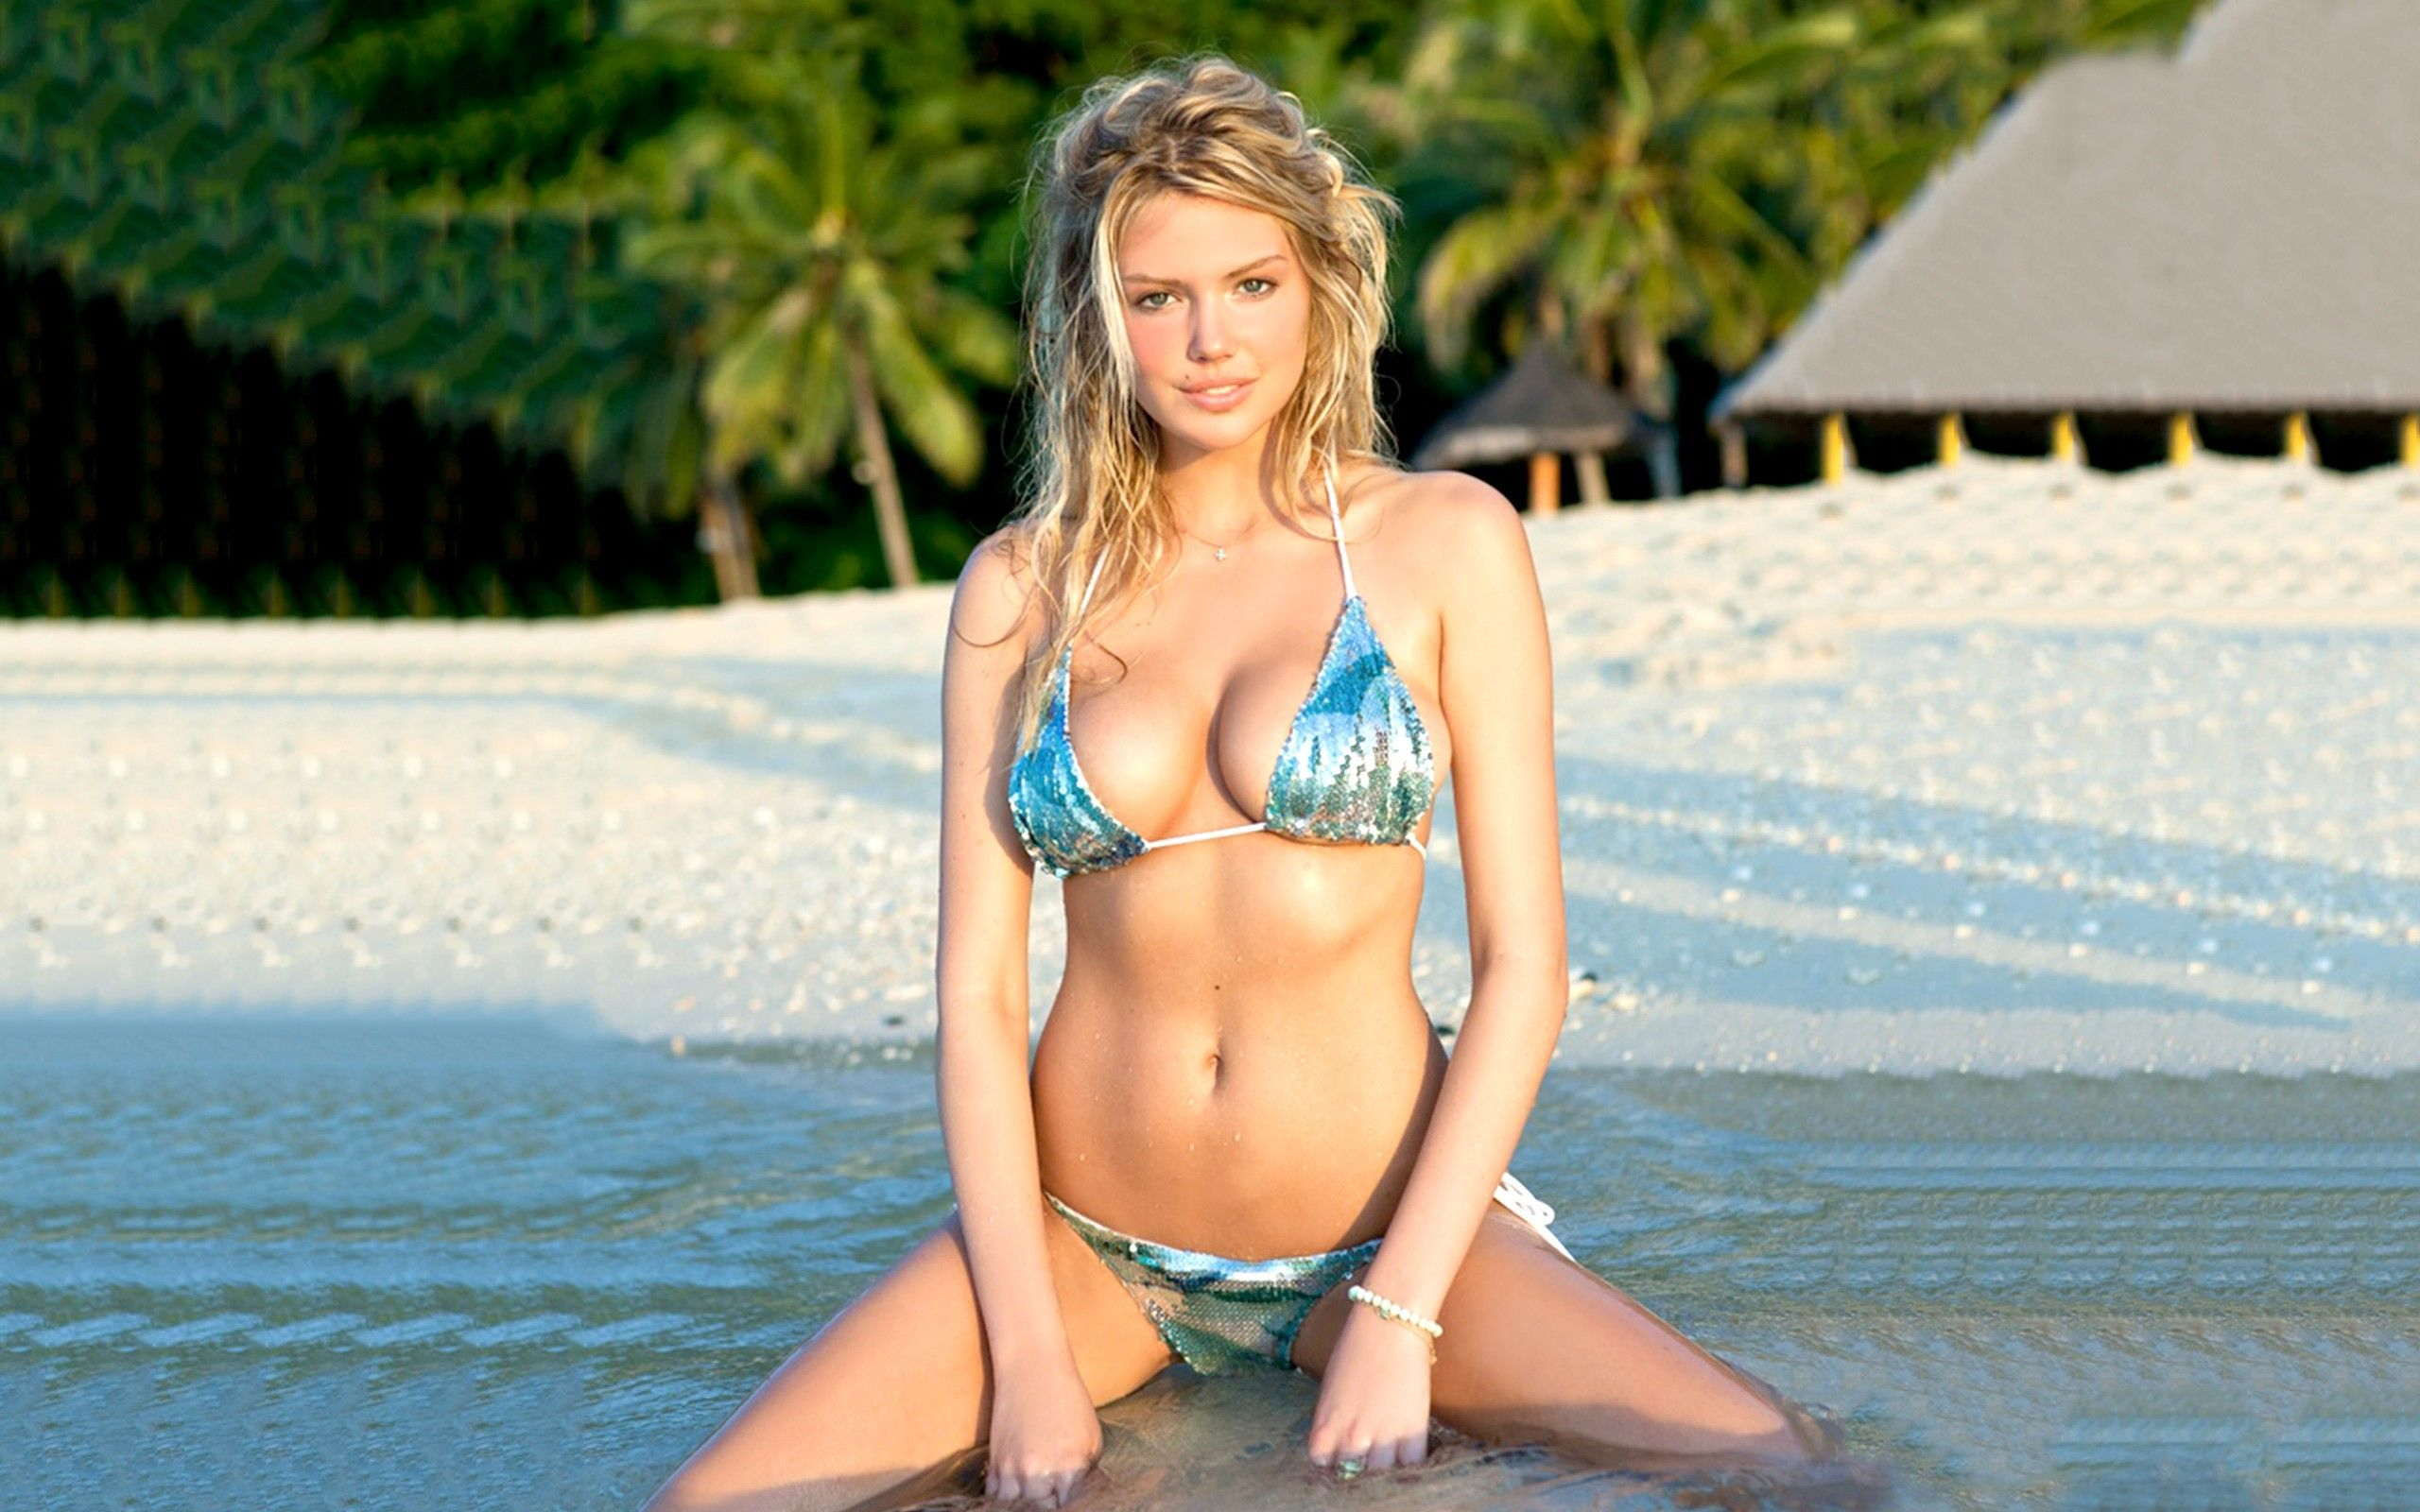 Kate Upton's 15 Sexiest Pictures Ever